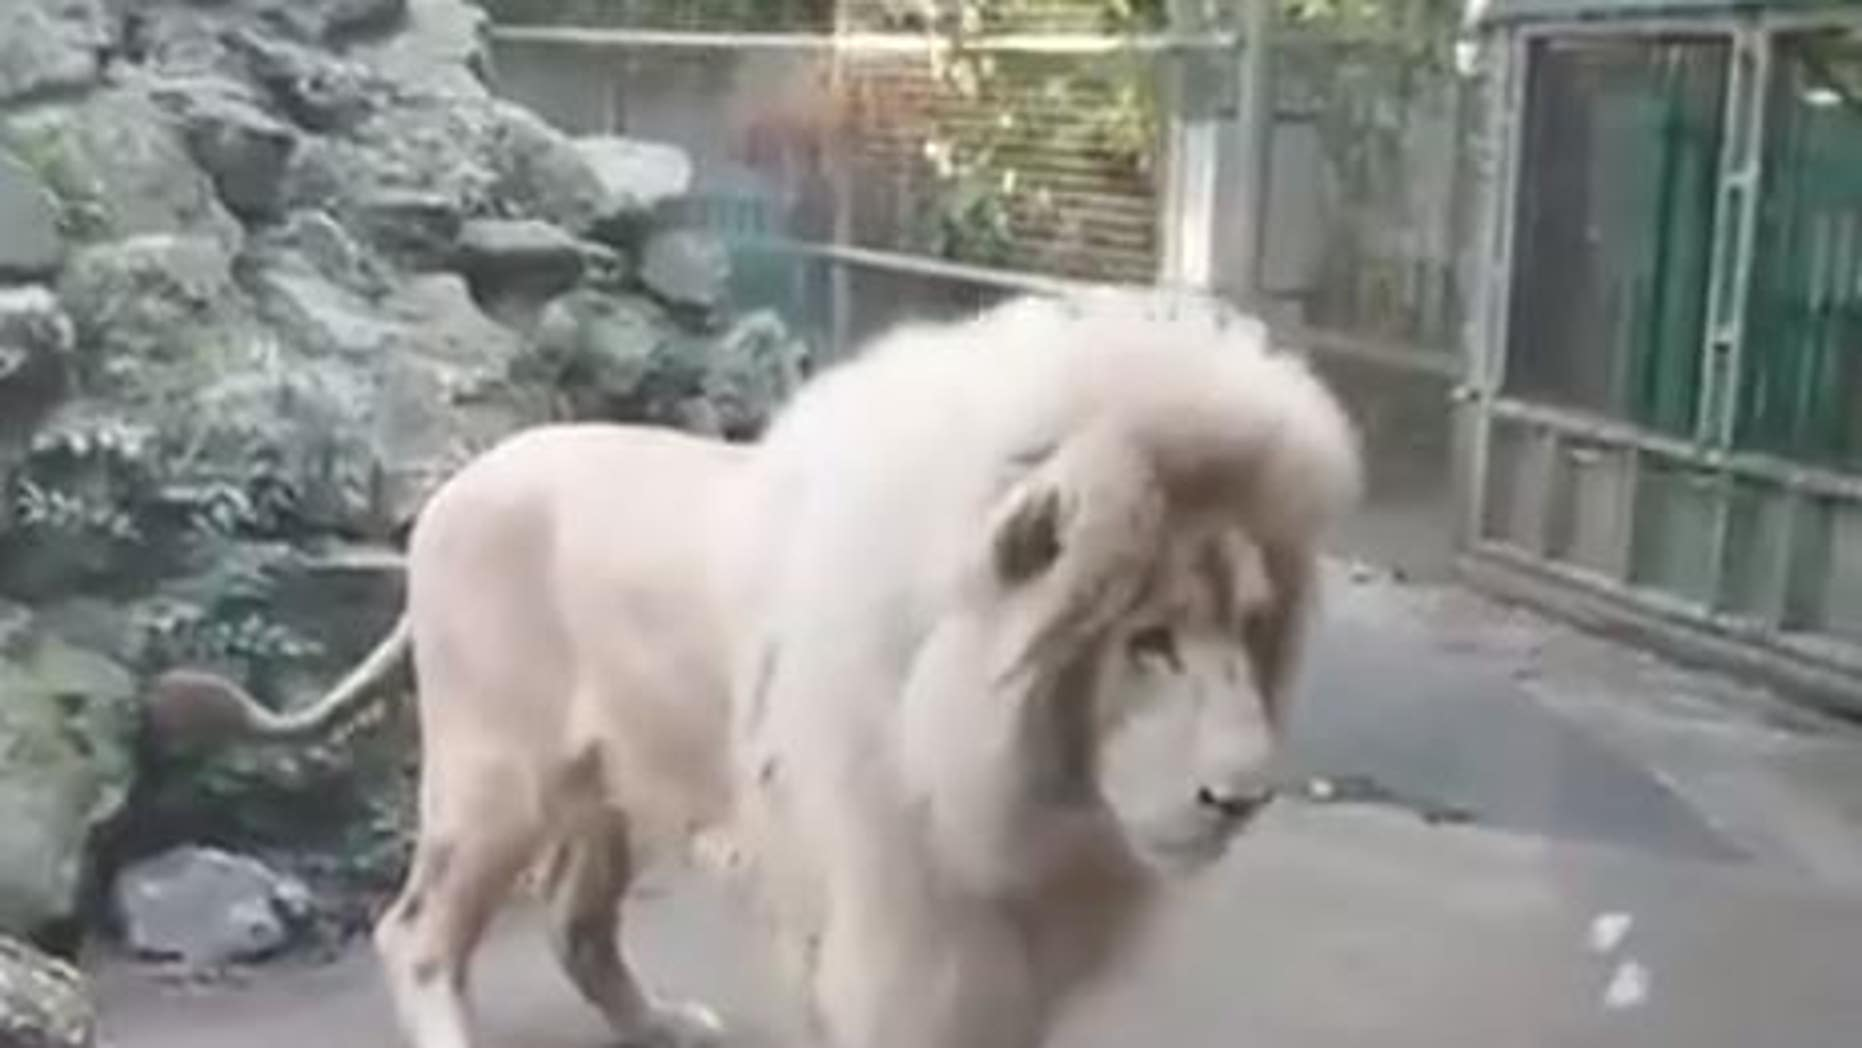 Paradise Wildlife Park in Broxbourne, England posted a video on Facebook showing Moto the lion's scared reaction to the burst bubble.